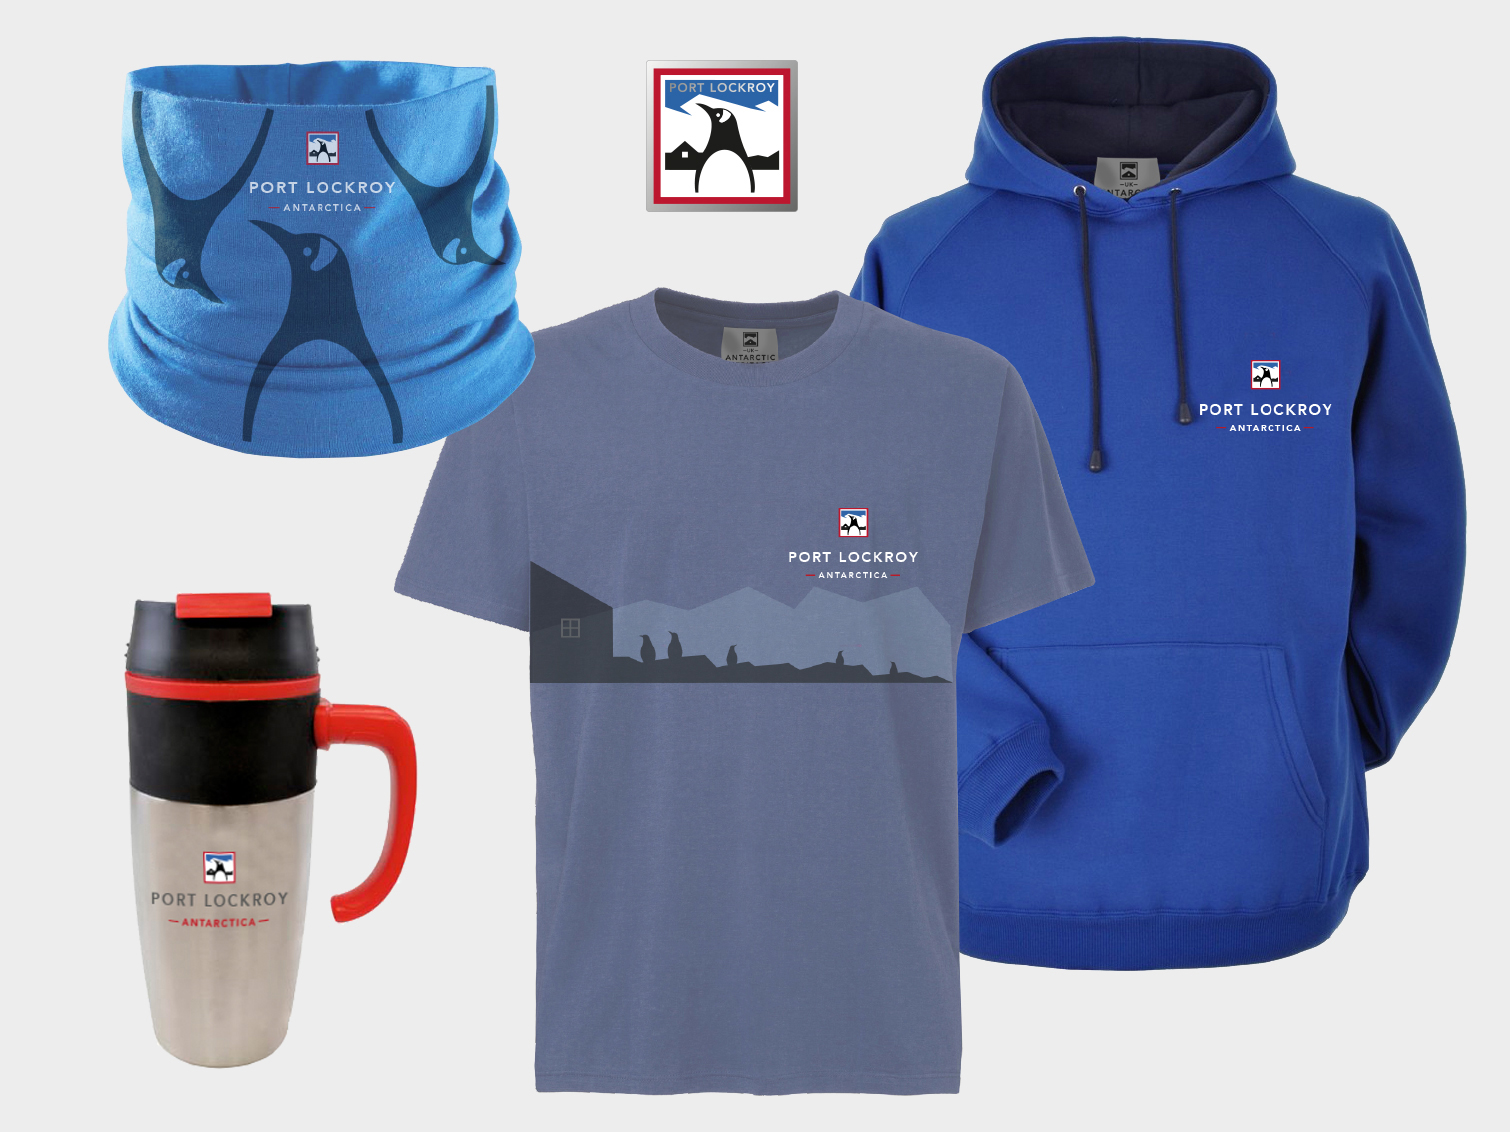 heritage-clothing-and-merchandise-design